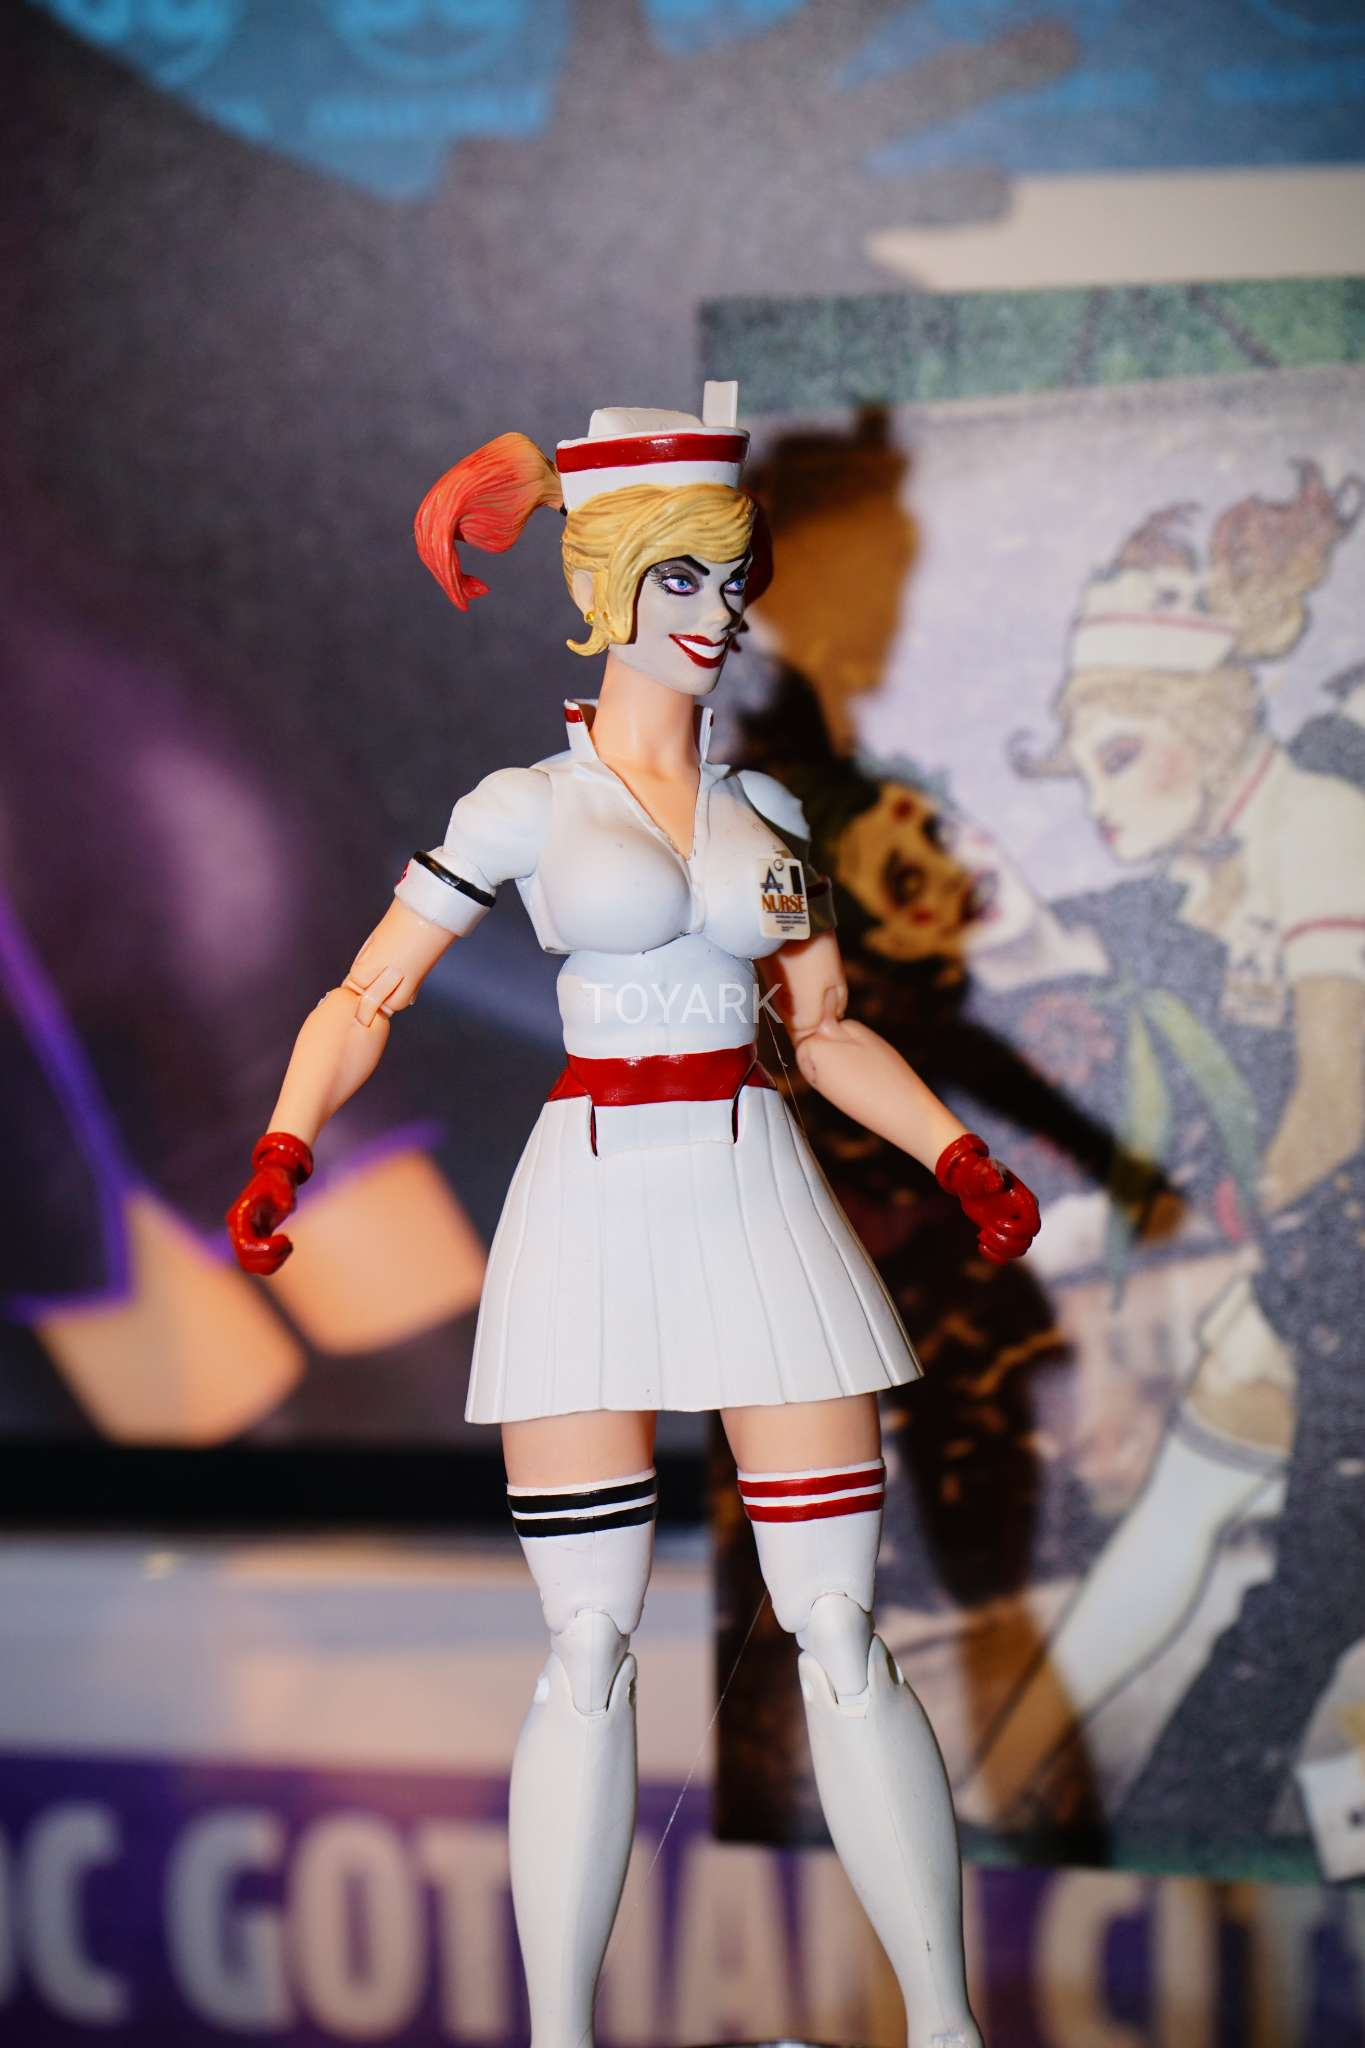 Dc Toys 2018 : Toy fair dc collectibles action figures the